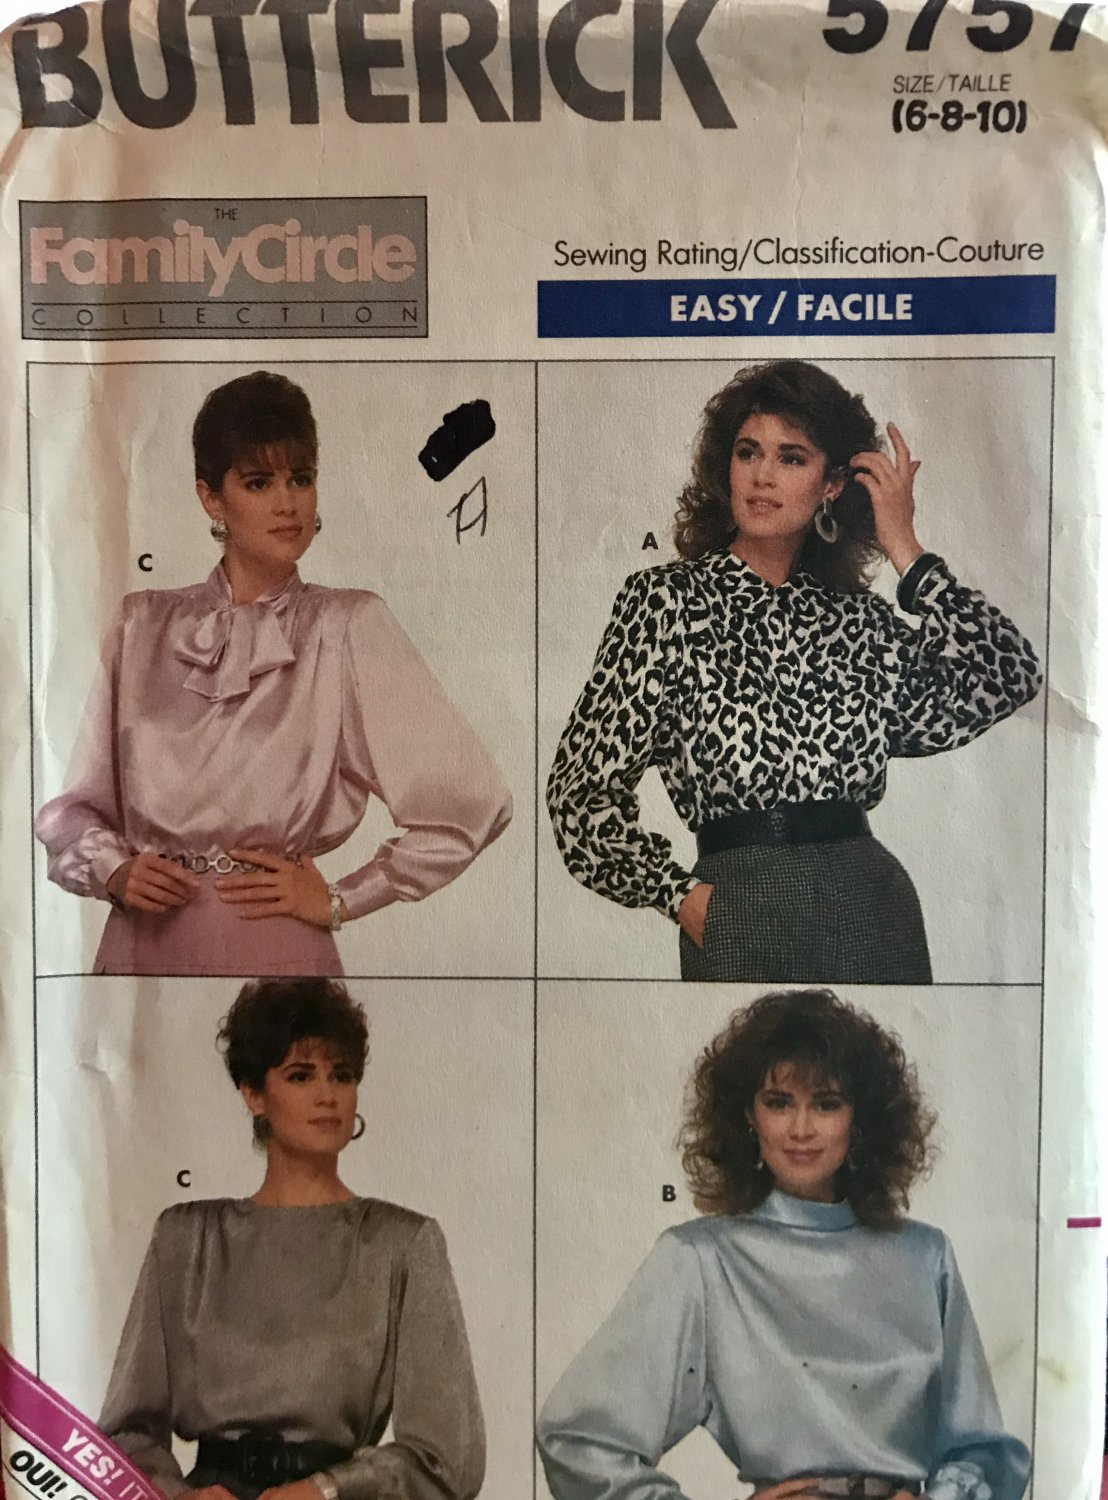 Butterick 5757 The Family Circle Collection Misses' Blouse Sewing Pattern Size 6 8 10